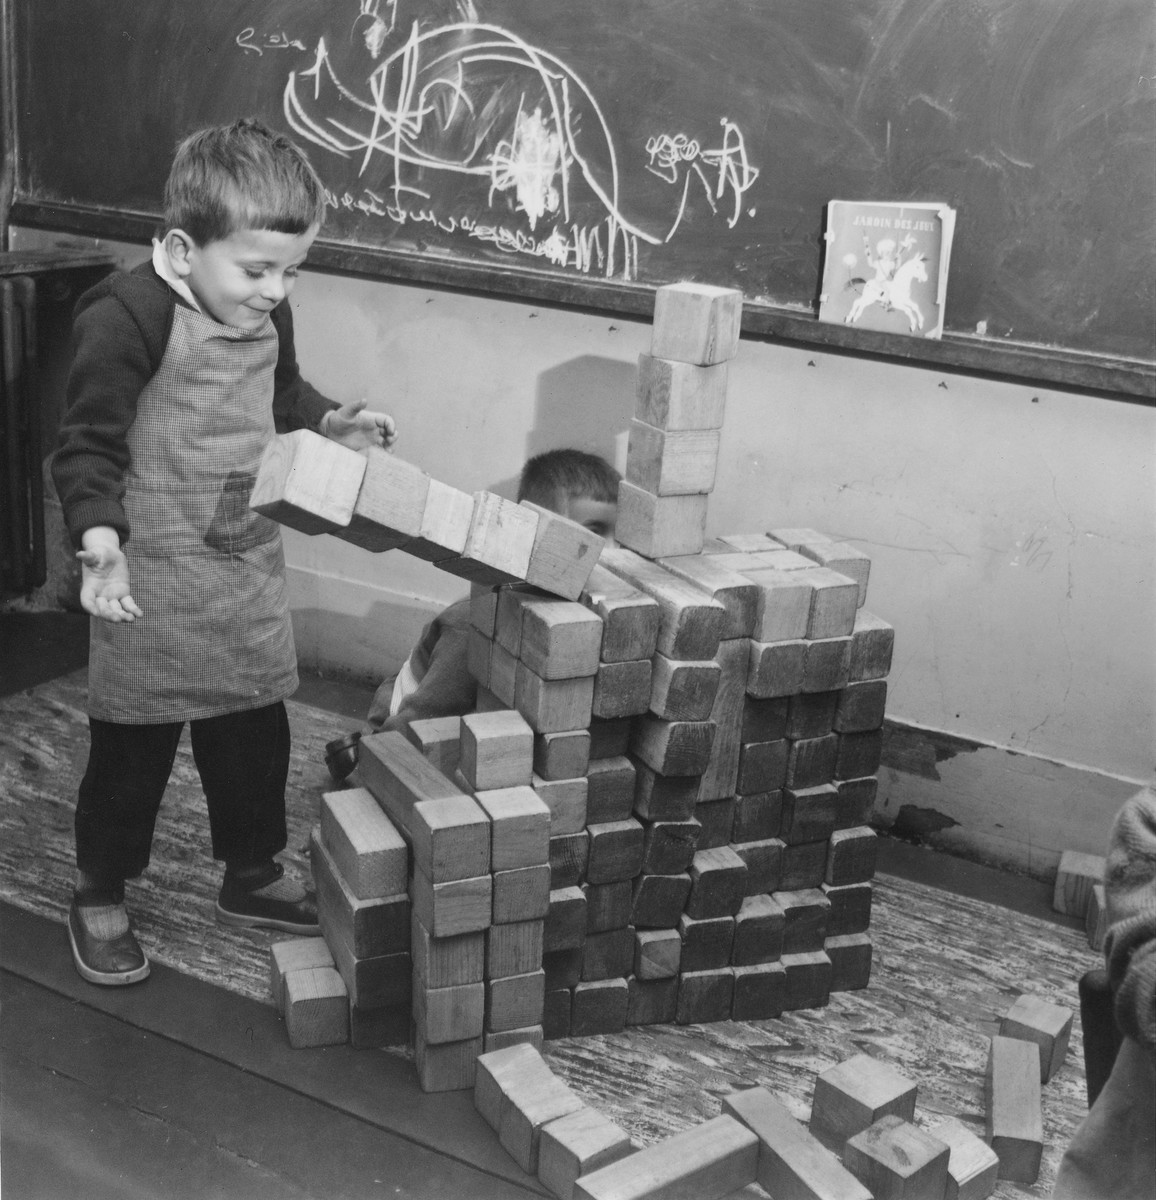 A young boy builds with blocks in a classroom in the Petit Monde children's home.